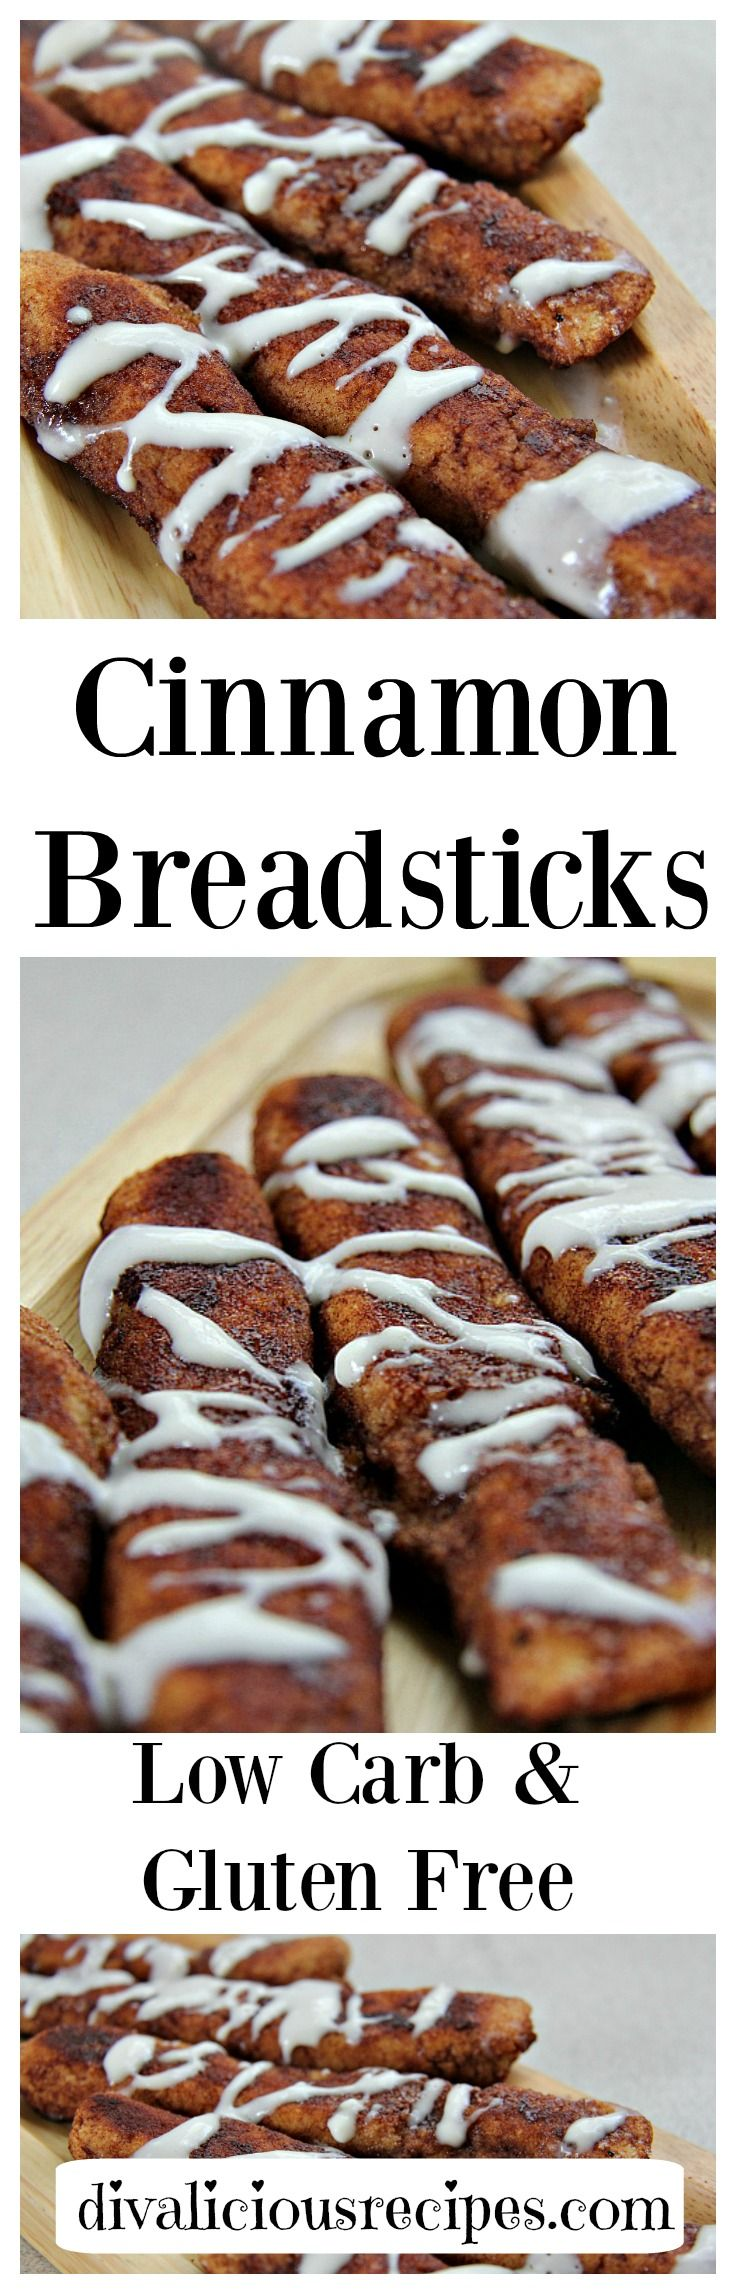 Low carb & gluten free cinnamon sticks made with coconut flour.